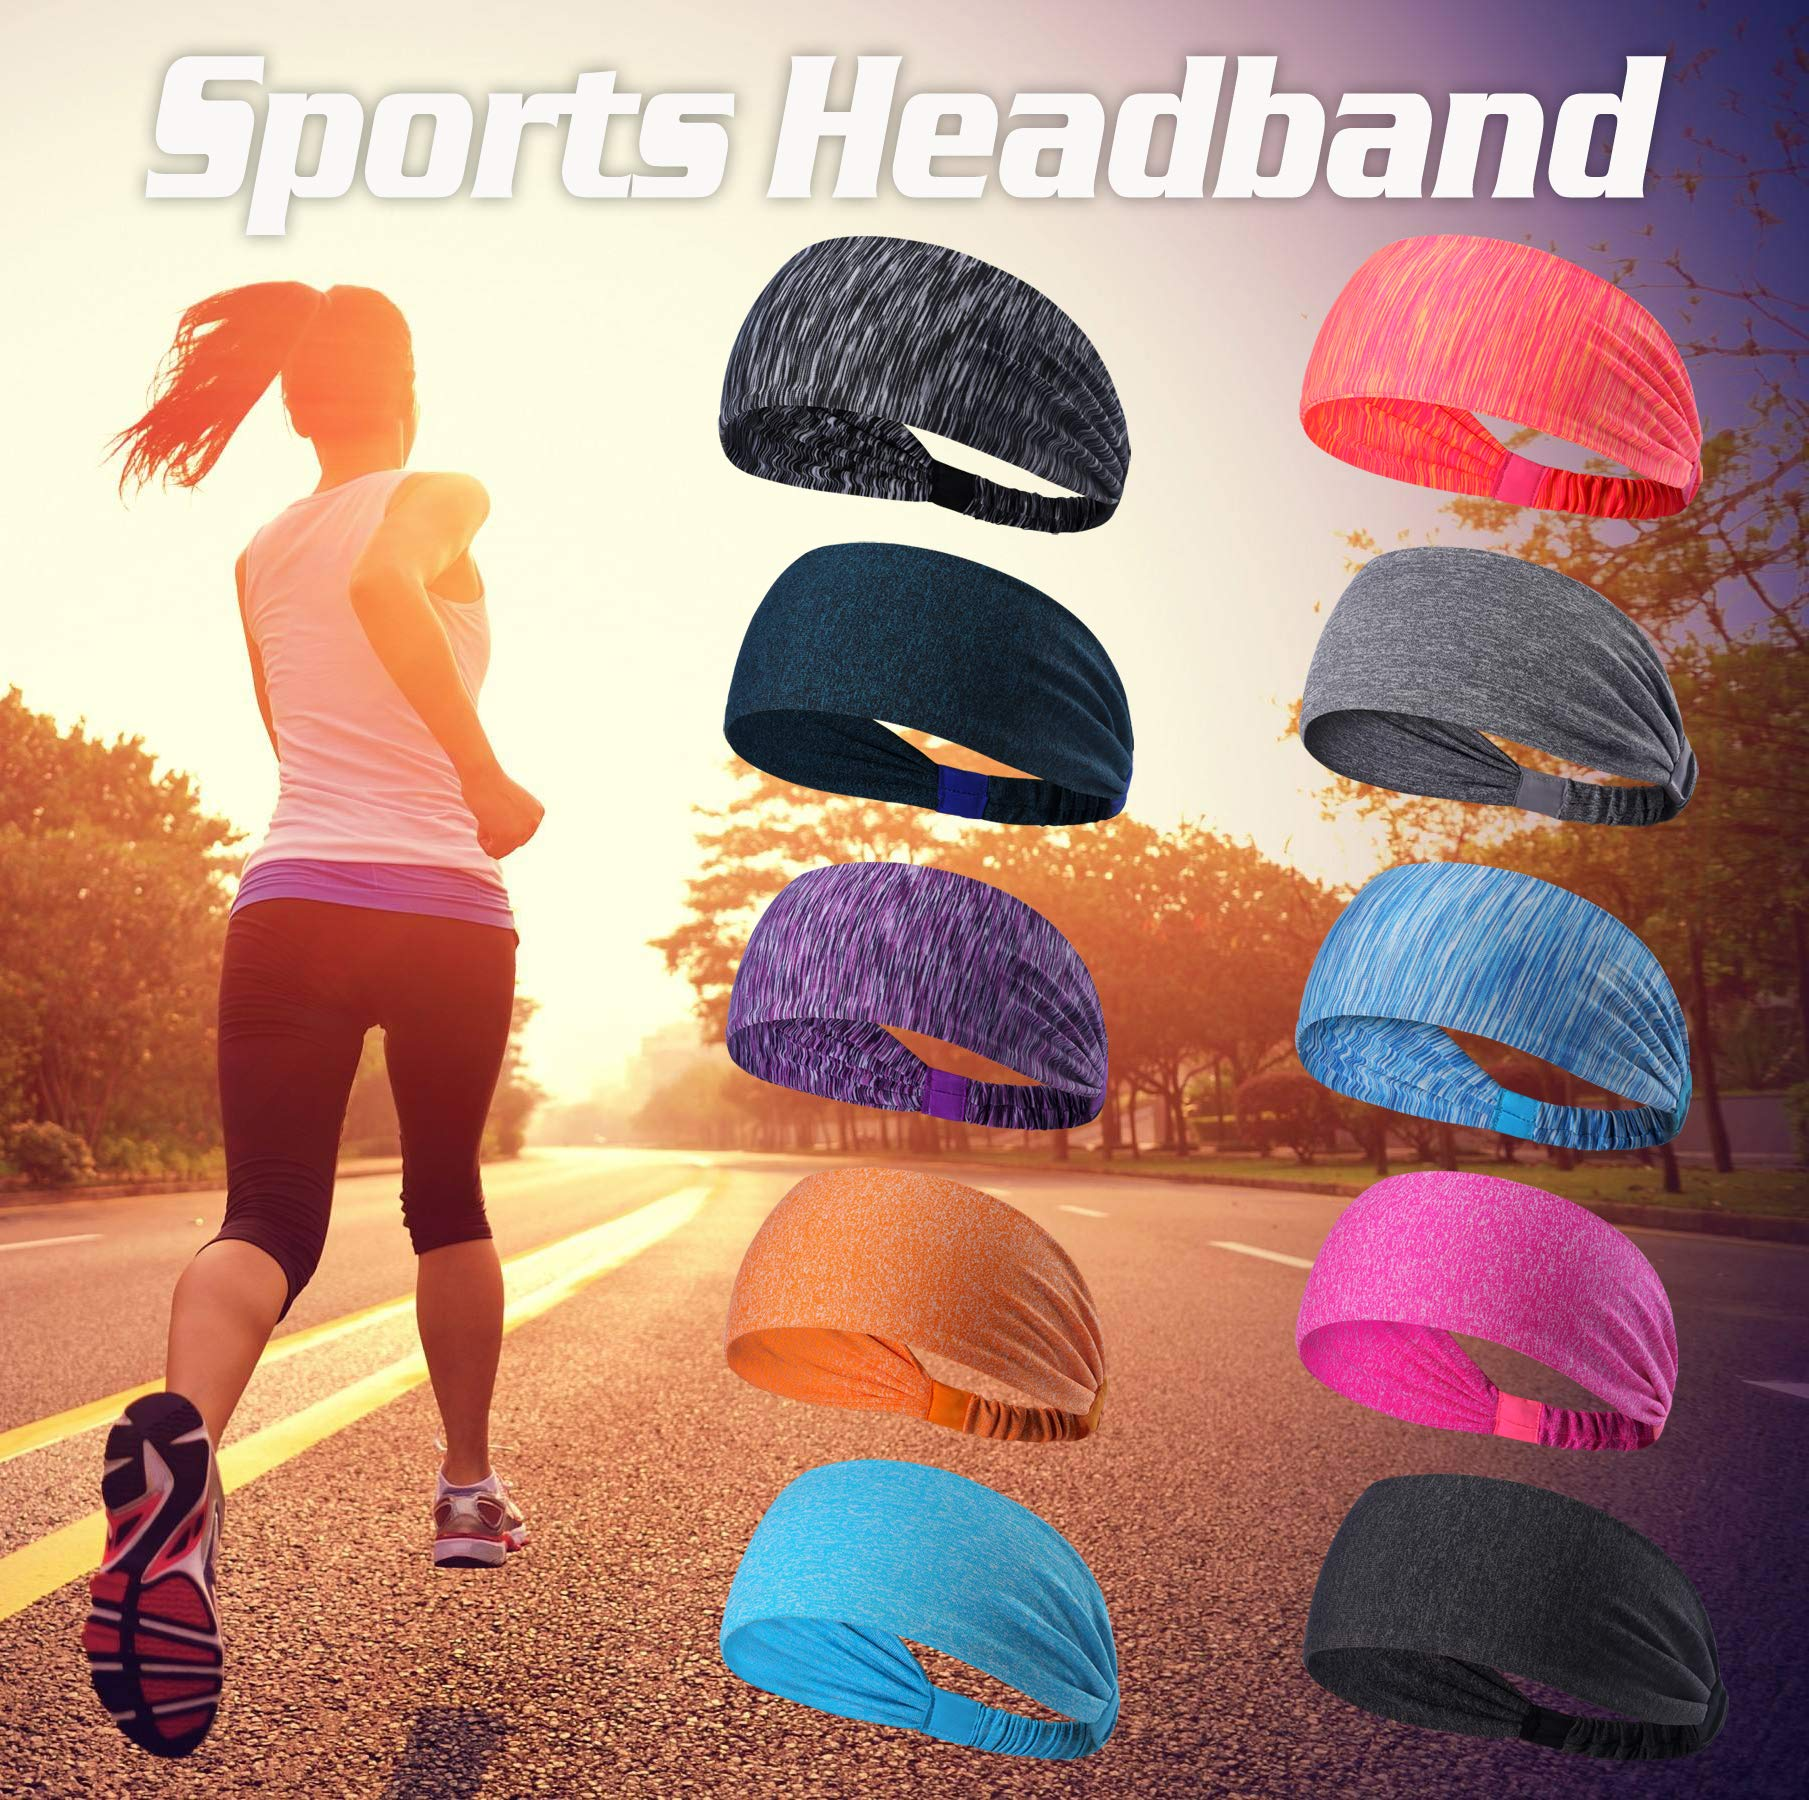 Set of 10 Women's Yoga Sport Athletic Workout Headband For Running Sports Travel Fitness Elastic Wicking Non Slip Lightweight Multi Style Bandana Headbands Headscarf fits all Men & Women (10 Colors) by DASUTA (Image #2)